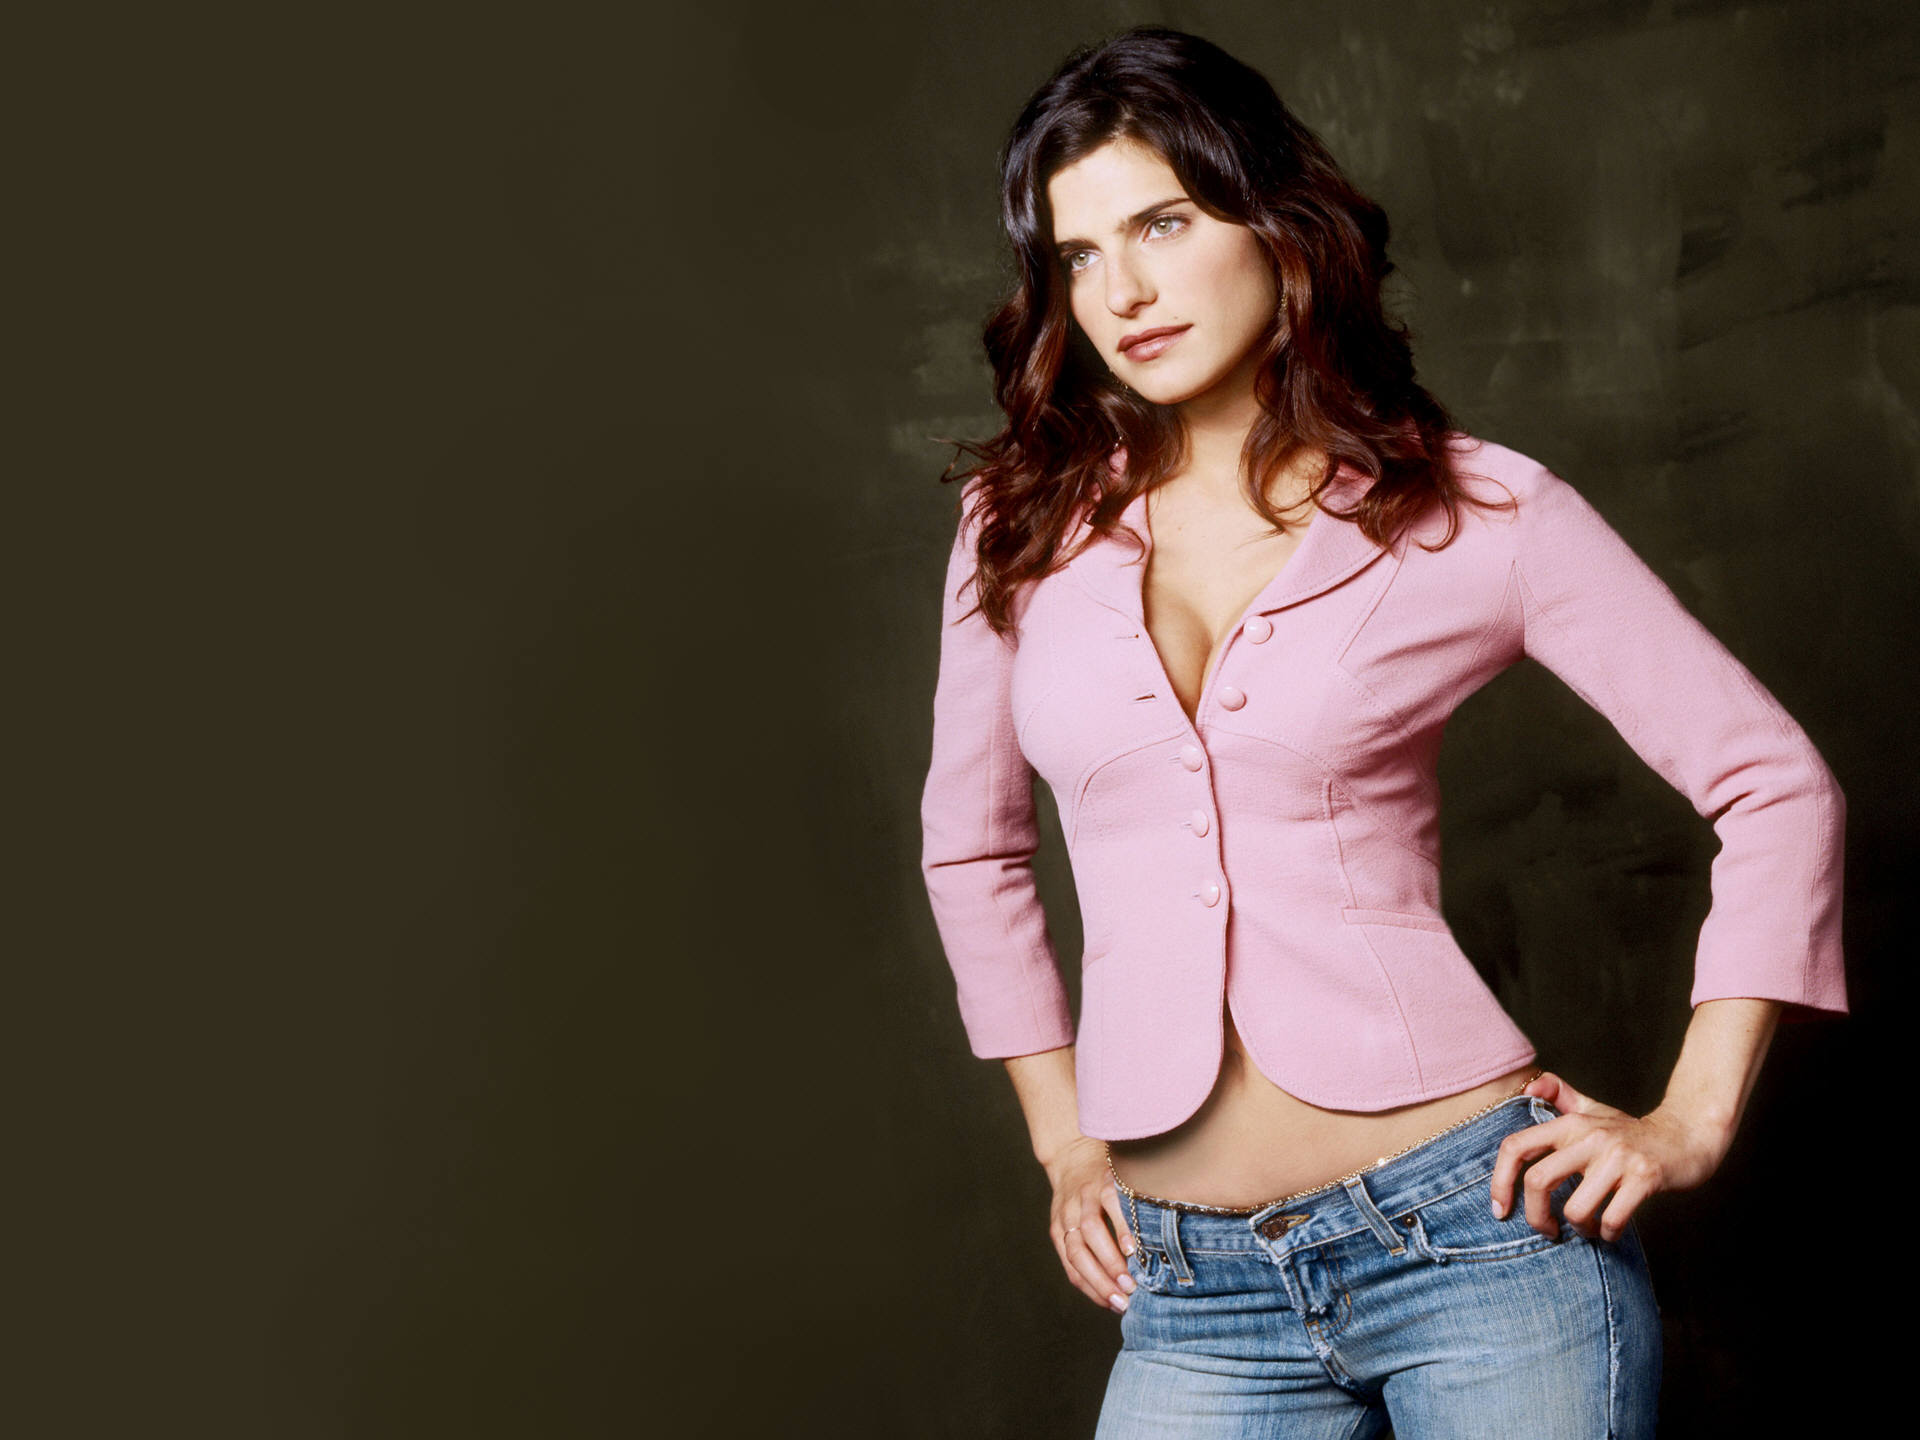 1920x1440 - Lake Bell Wallpapers 12